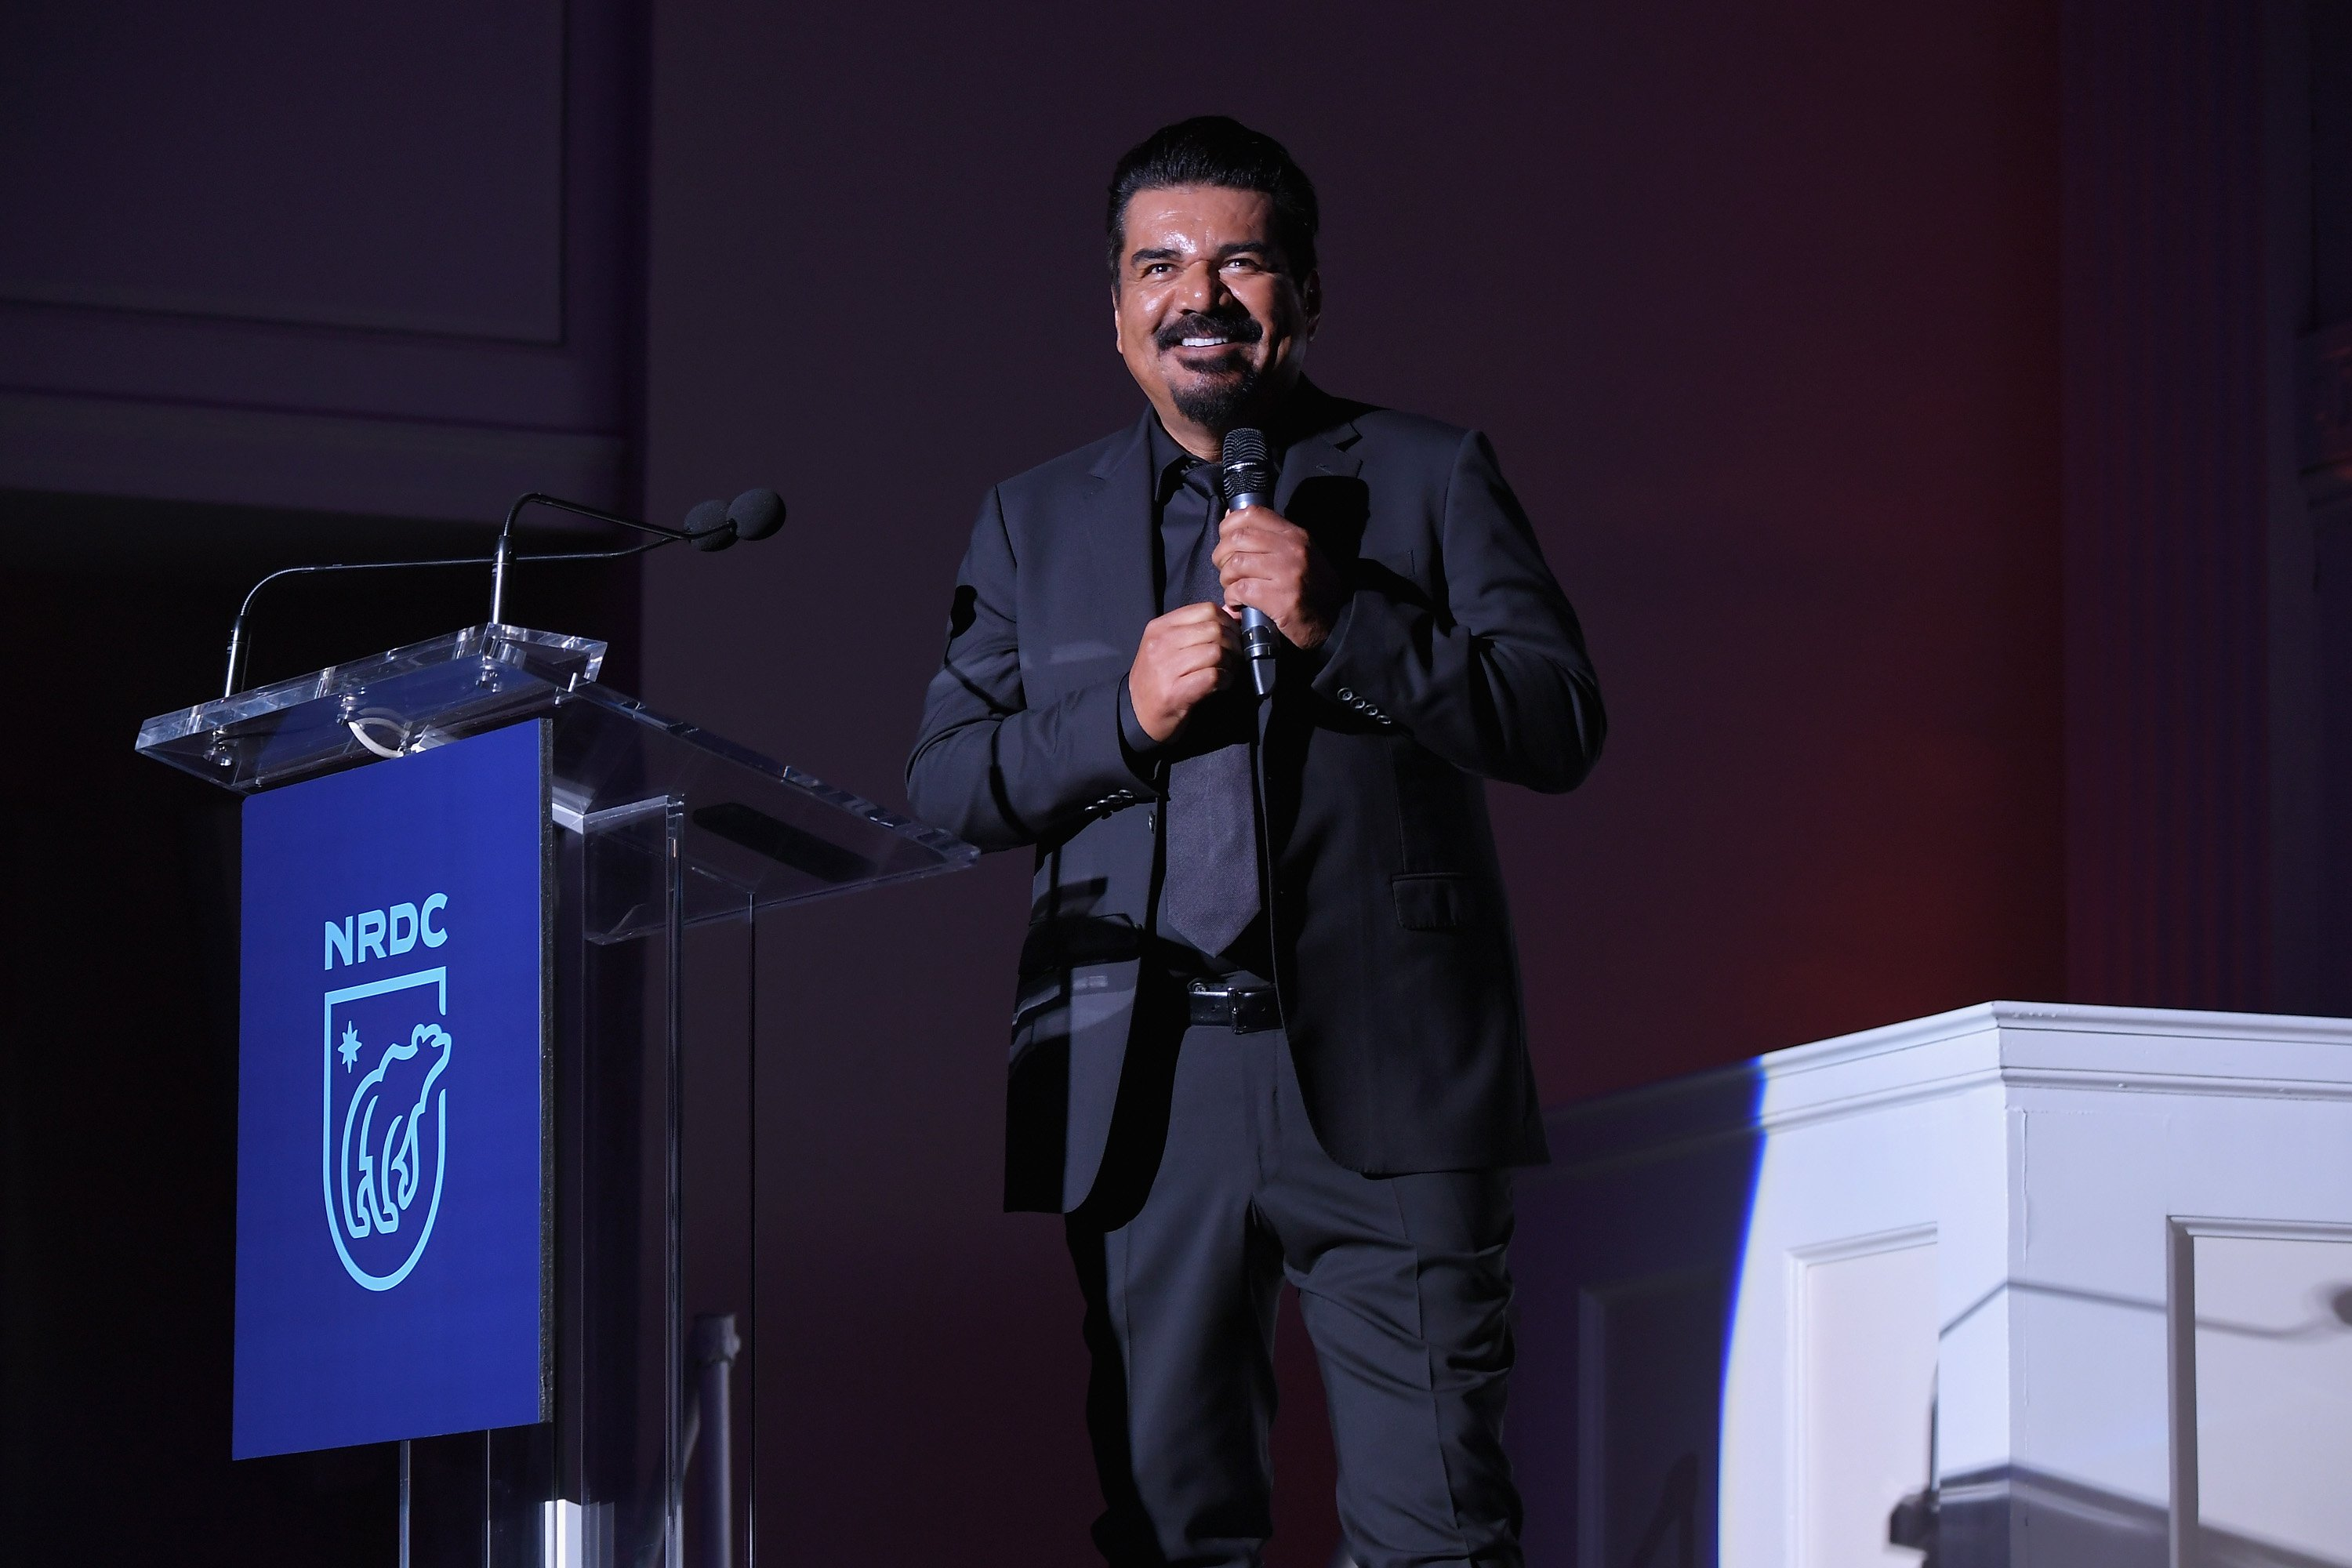 George Lopez performs onstage during the Natural Resources Defense Council's 'NRDC's Night of Comedy' Benefit with Seth Meyers, John Oliver, George Lopez, Mike Birbiglia and Hasan Minhaj on November 9, 2016 in New York Cit